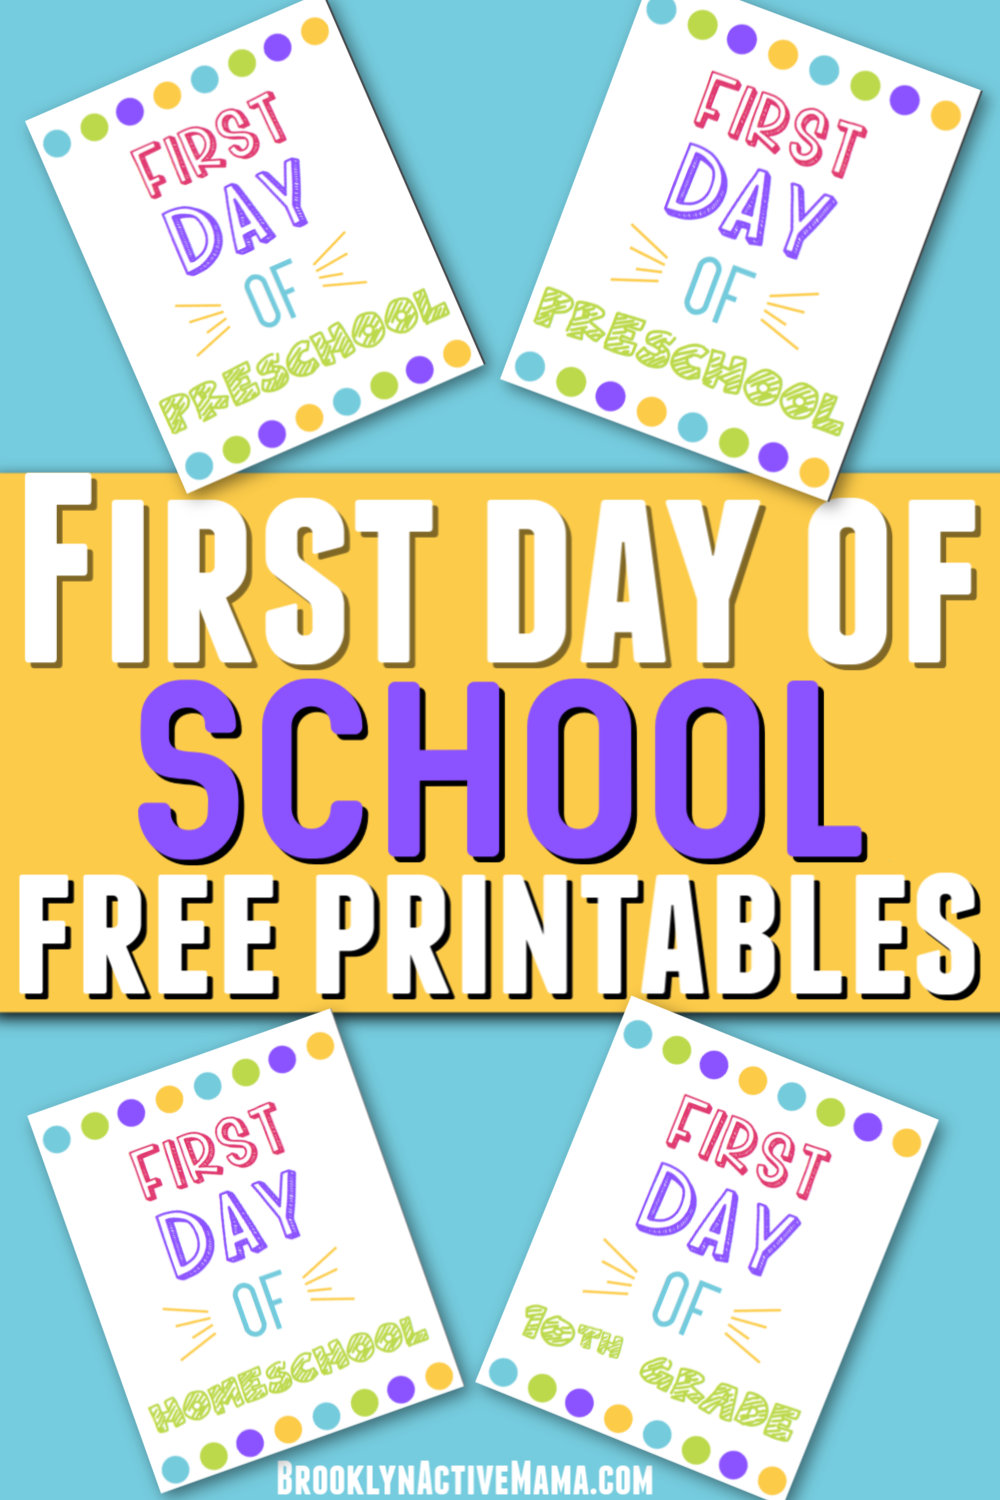 How To Make Every Grade More Like >> First Day Of School Printables For Every Grade Including Homeschool